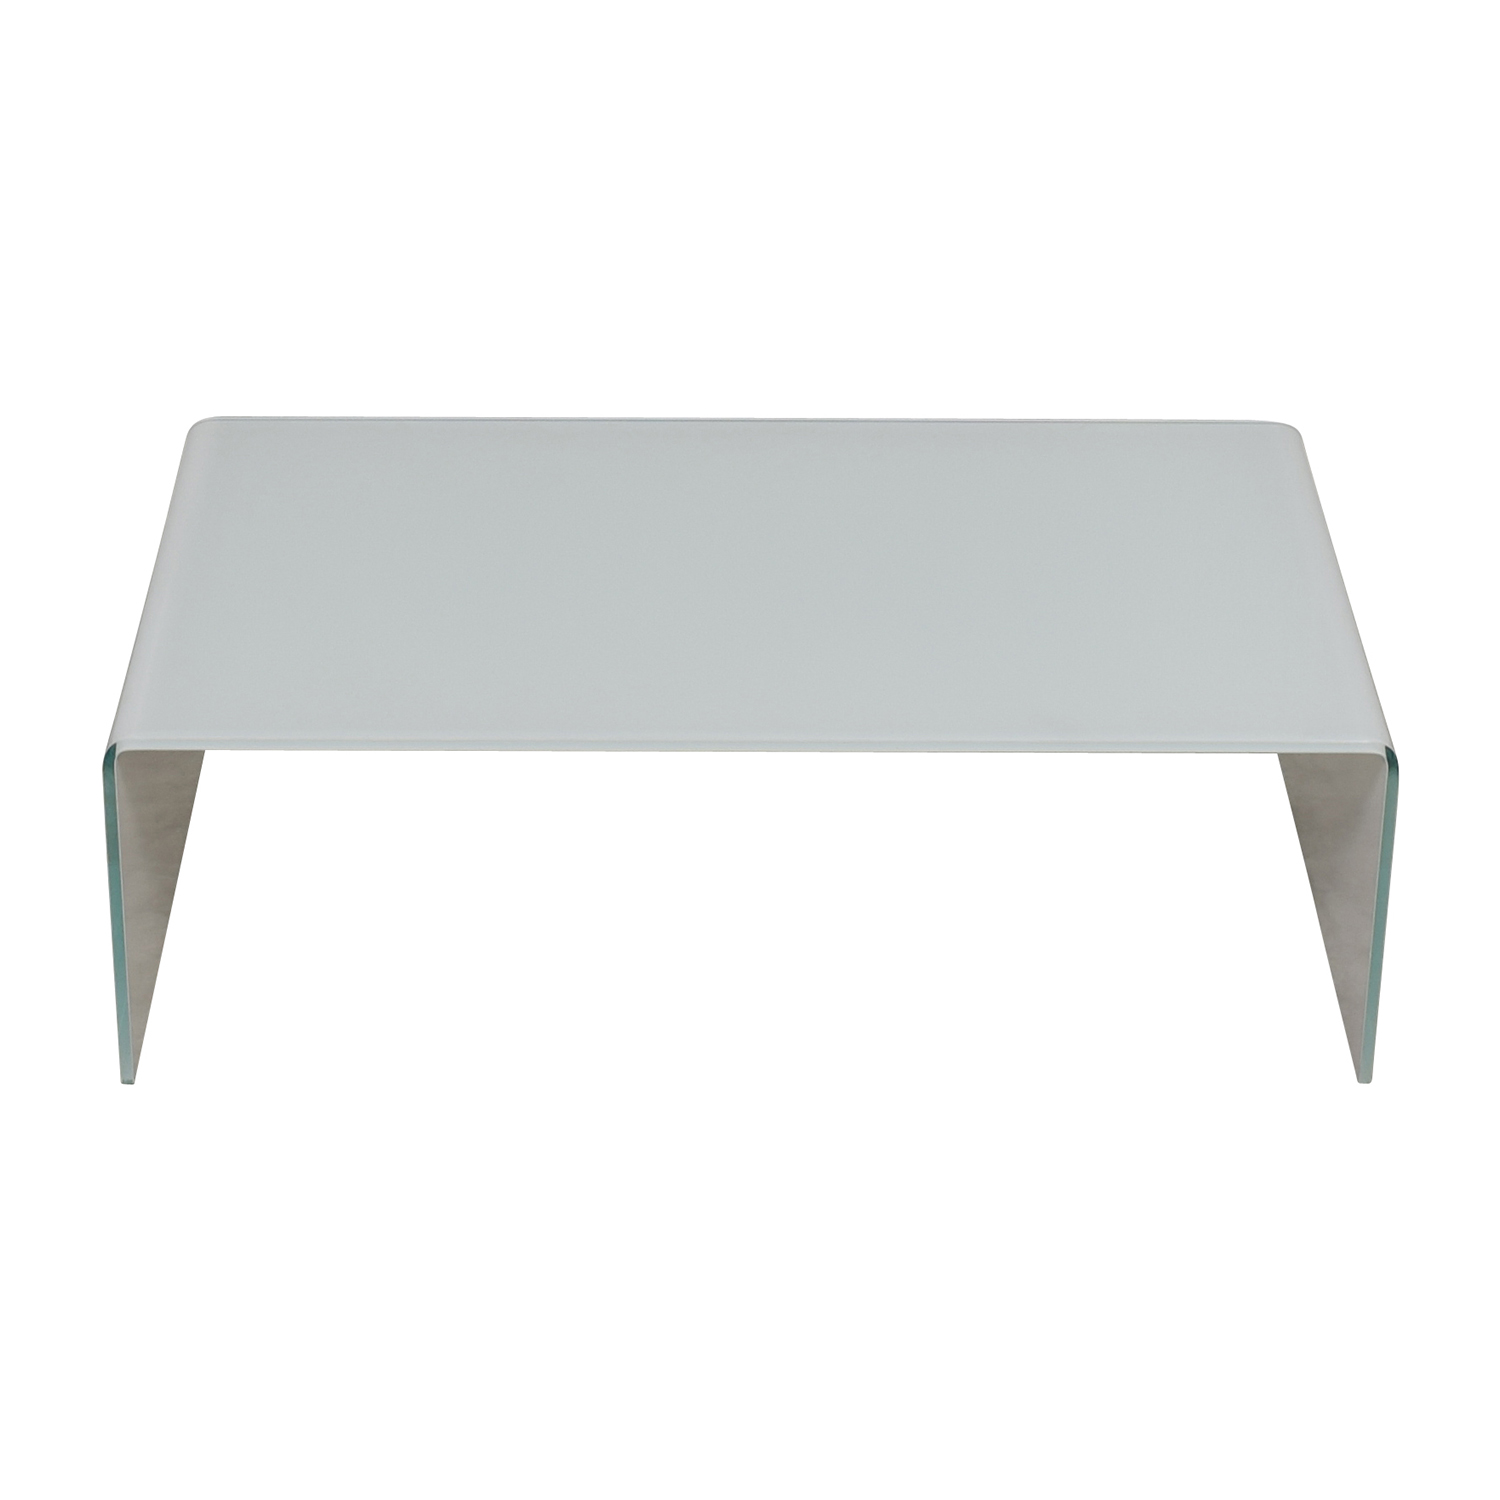 Miniforms Miniforms High-End Curvo White Glass Table for sale